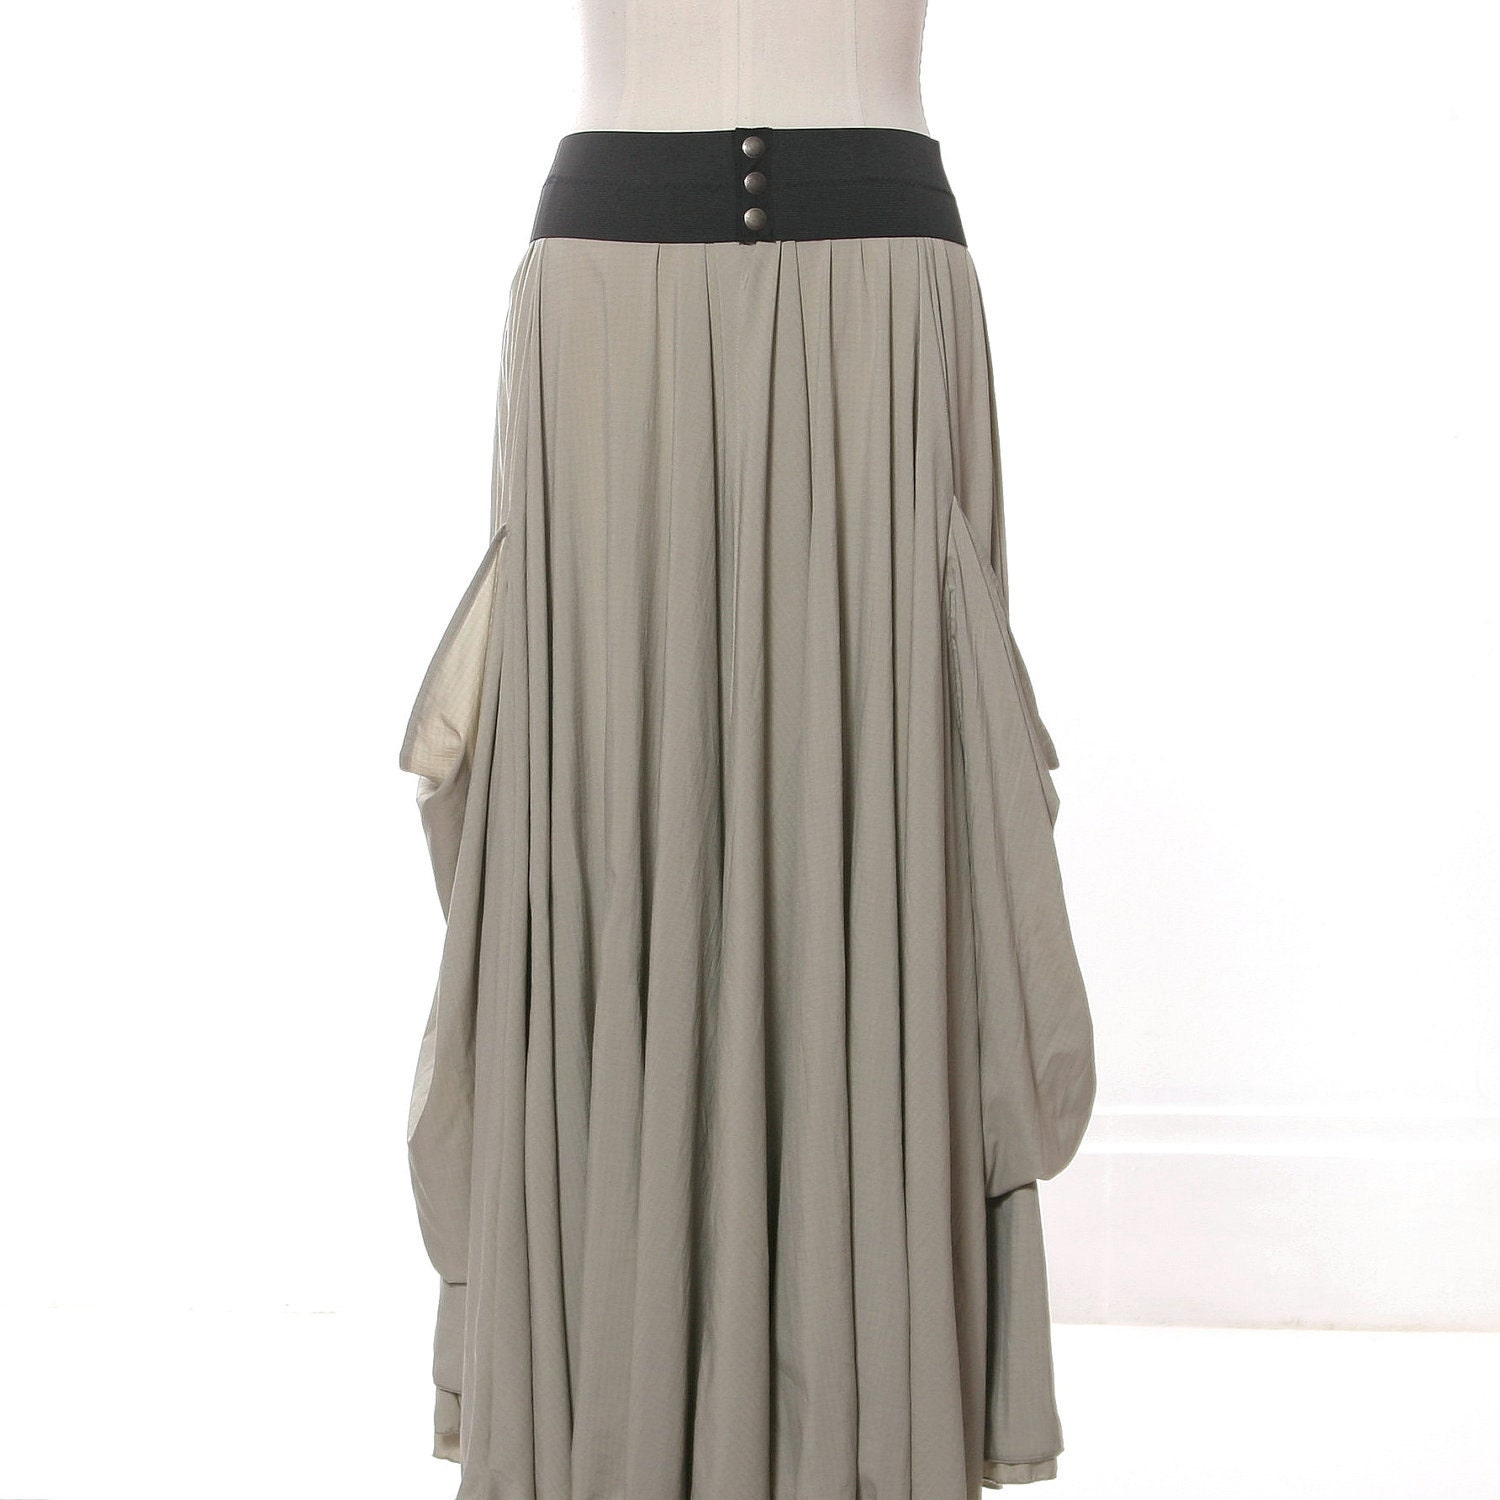 taupe maxi skirt with large pockets and by milocreativestudios